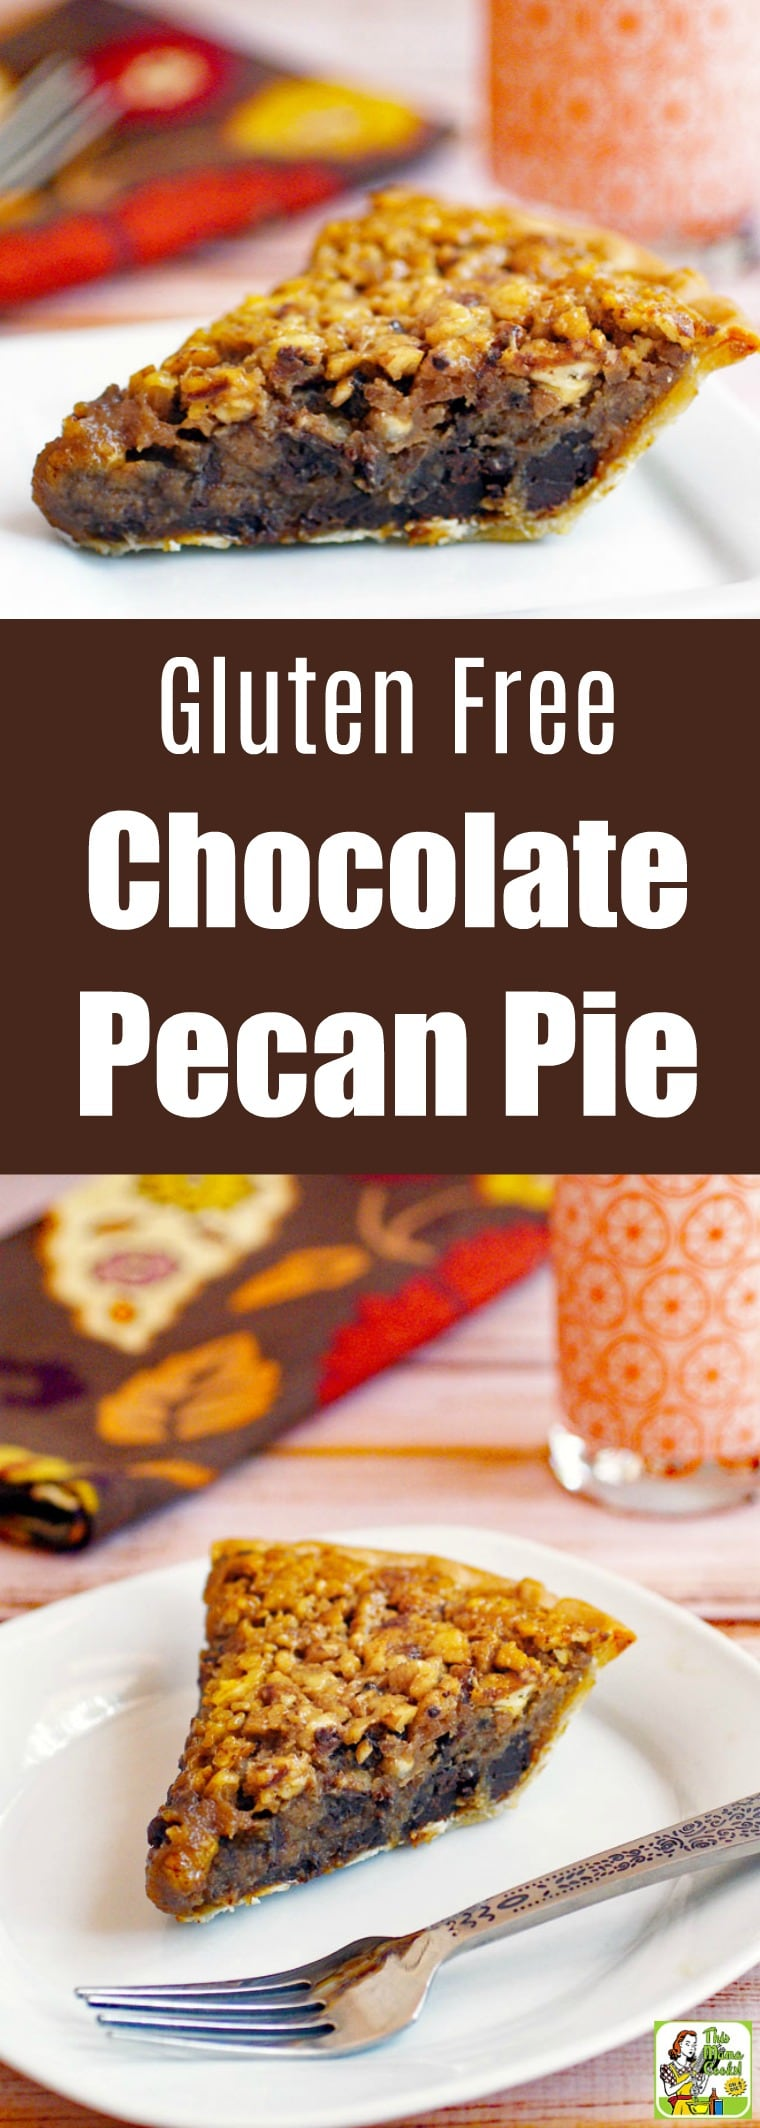 This Gluten Free Chocolate Pecan Pie is a classic Thanksgiving dessert made even better. This gluten free and dairy free pecan pie is baked up with chocolate, bourbon, and sorghum. Comes with tips on how to make it a vegan pecan pie. #recipes #easy #recipeoftheday #glutenfree #easyrecipe #easyrecipes #glutenfreerecipes #desserts #dessertrecipes #baking #pie #thanksgiving #thanksgivingrecipes #dairyfree #chocolate #veganfood #vegan #veganrecipes #vegandesserts #bourbon #pecan